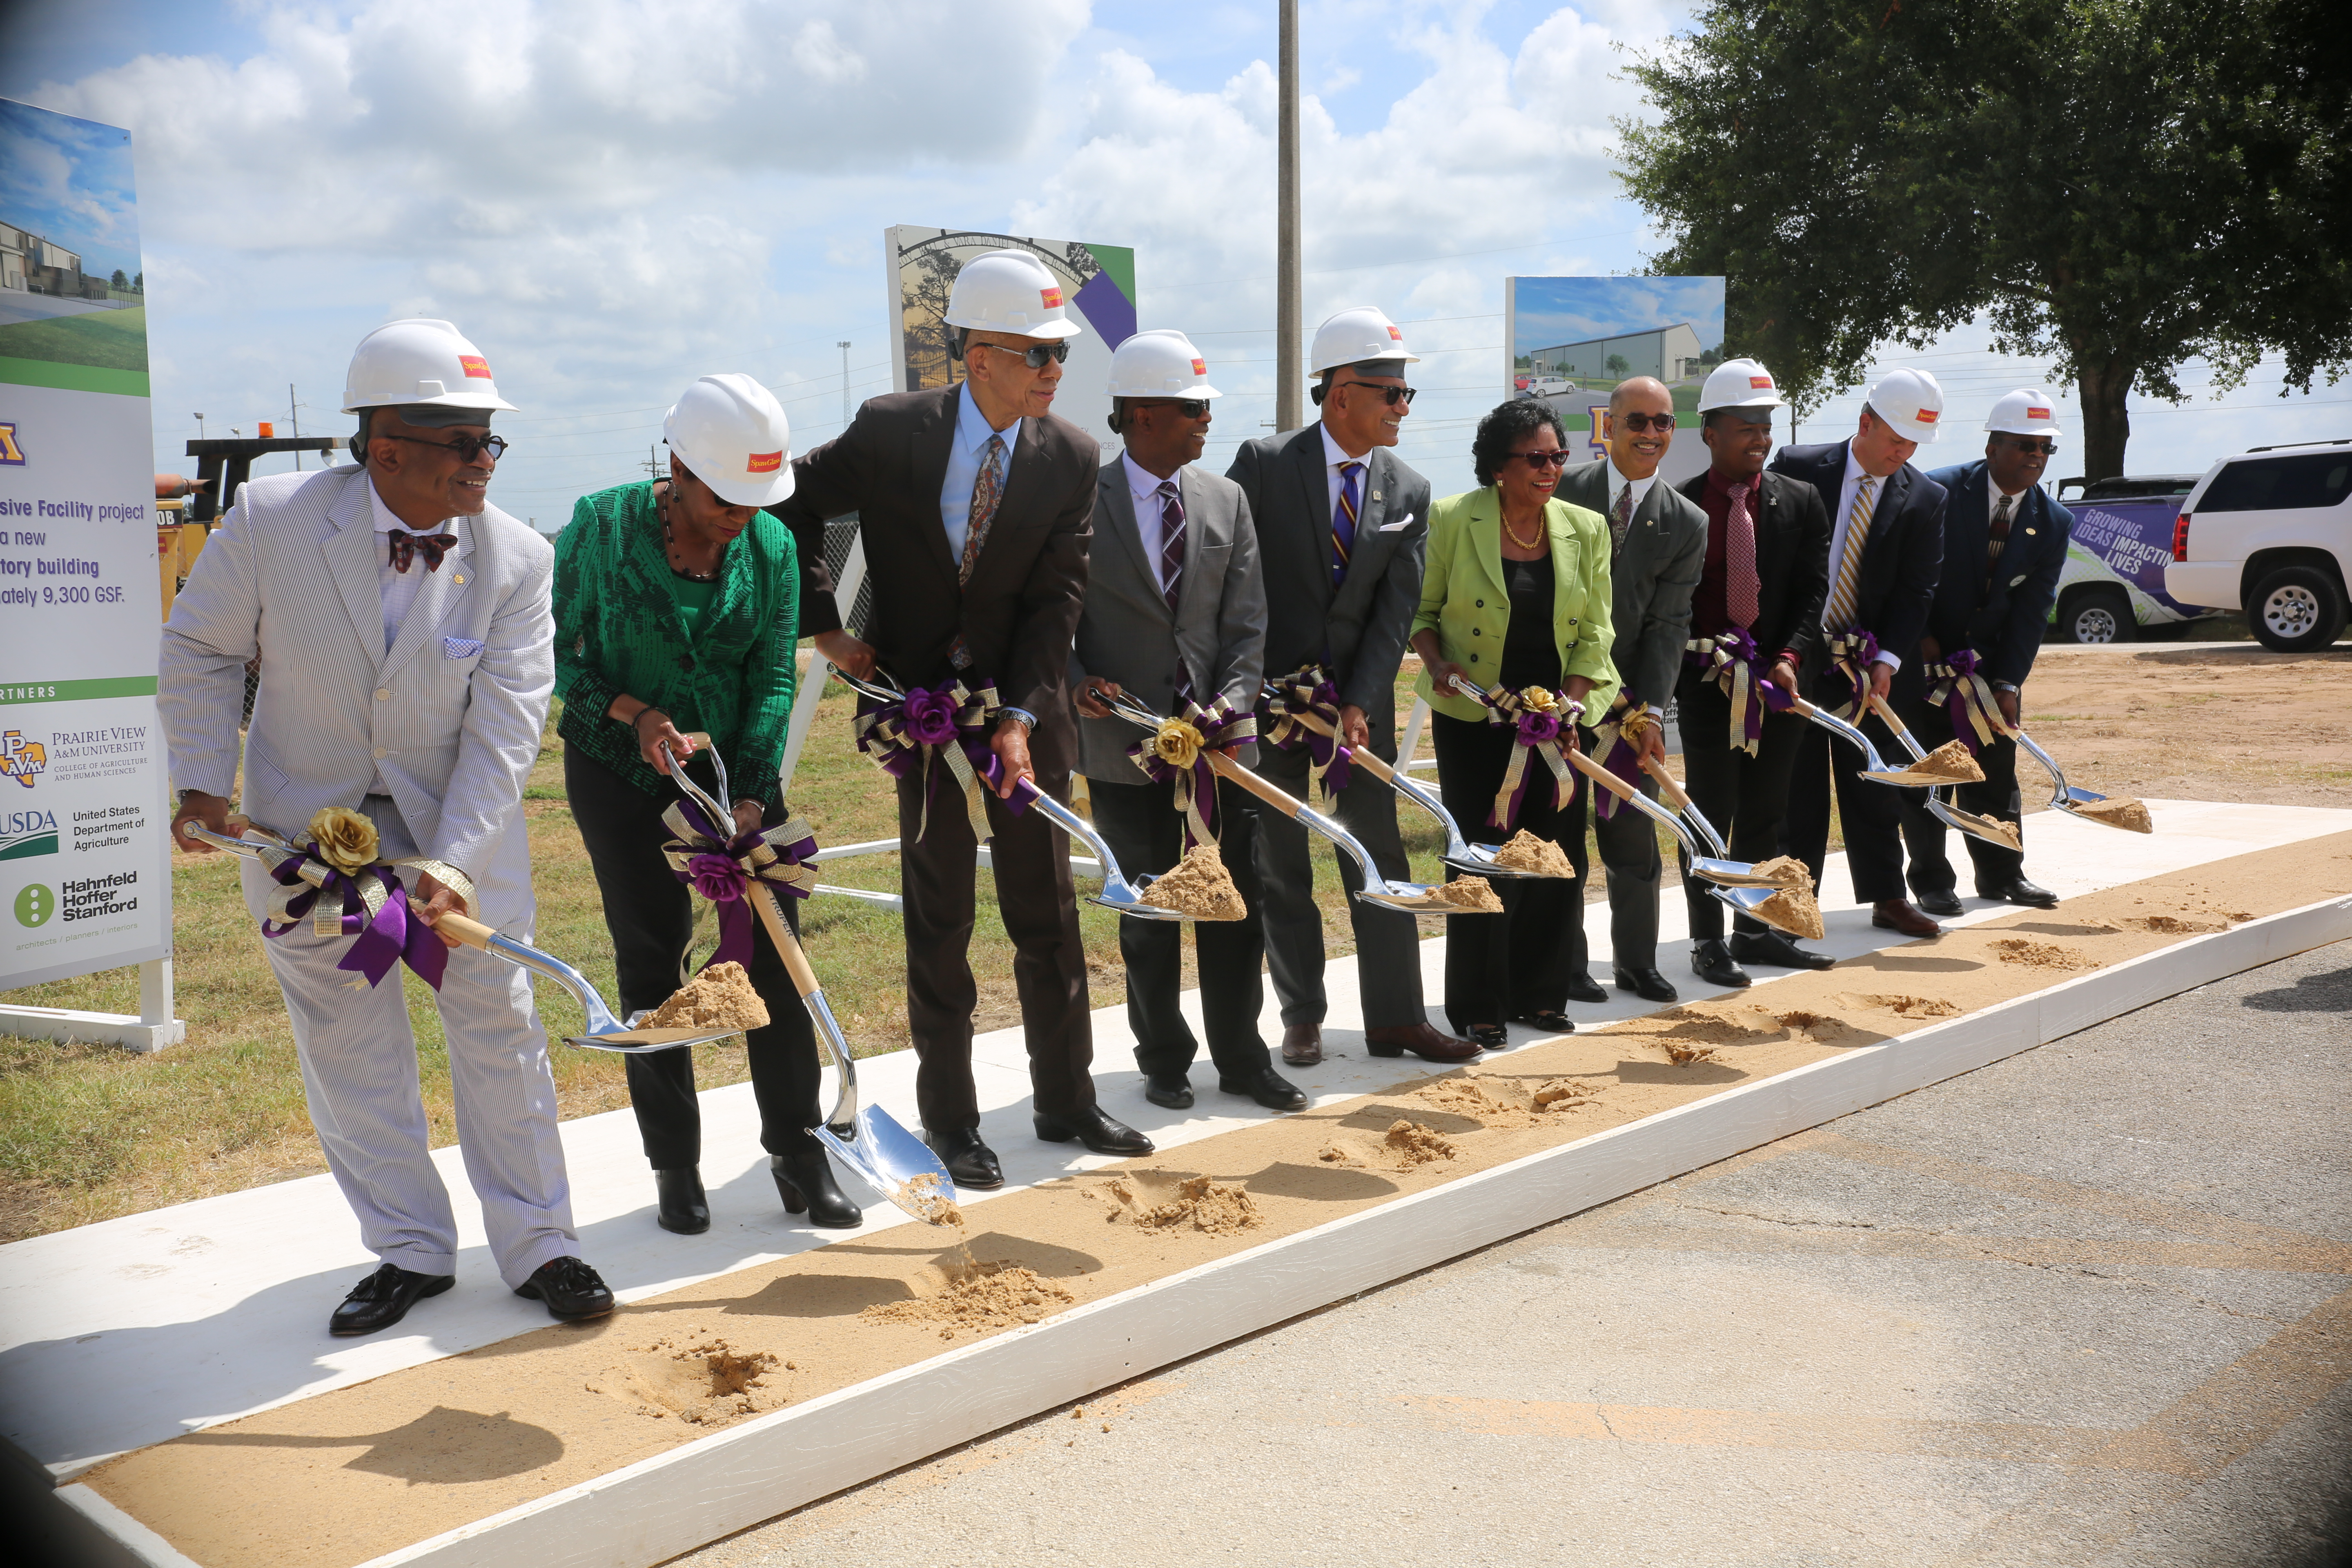 members of the CAHS and University holding shovels of dirt